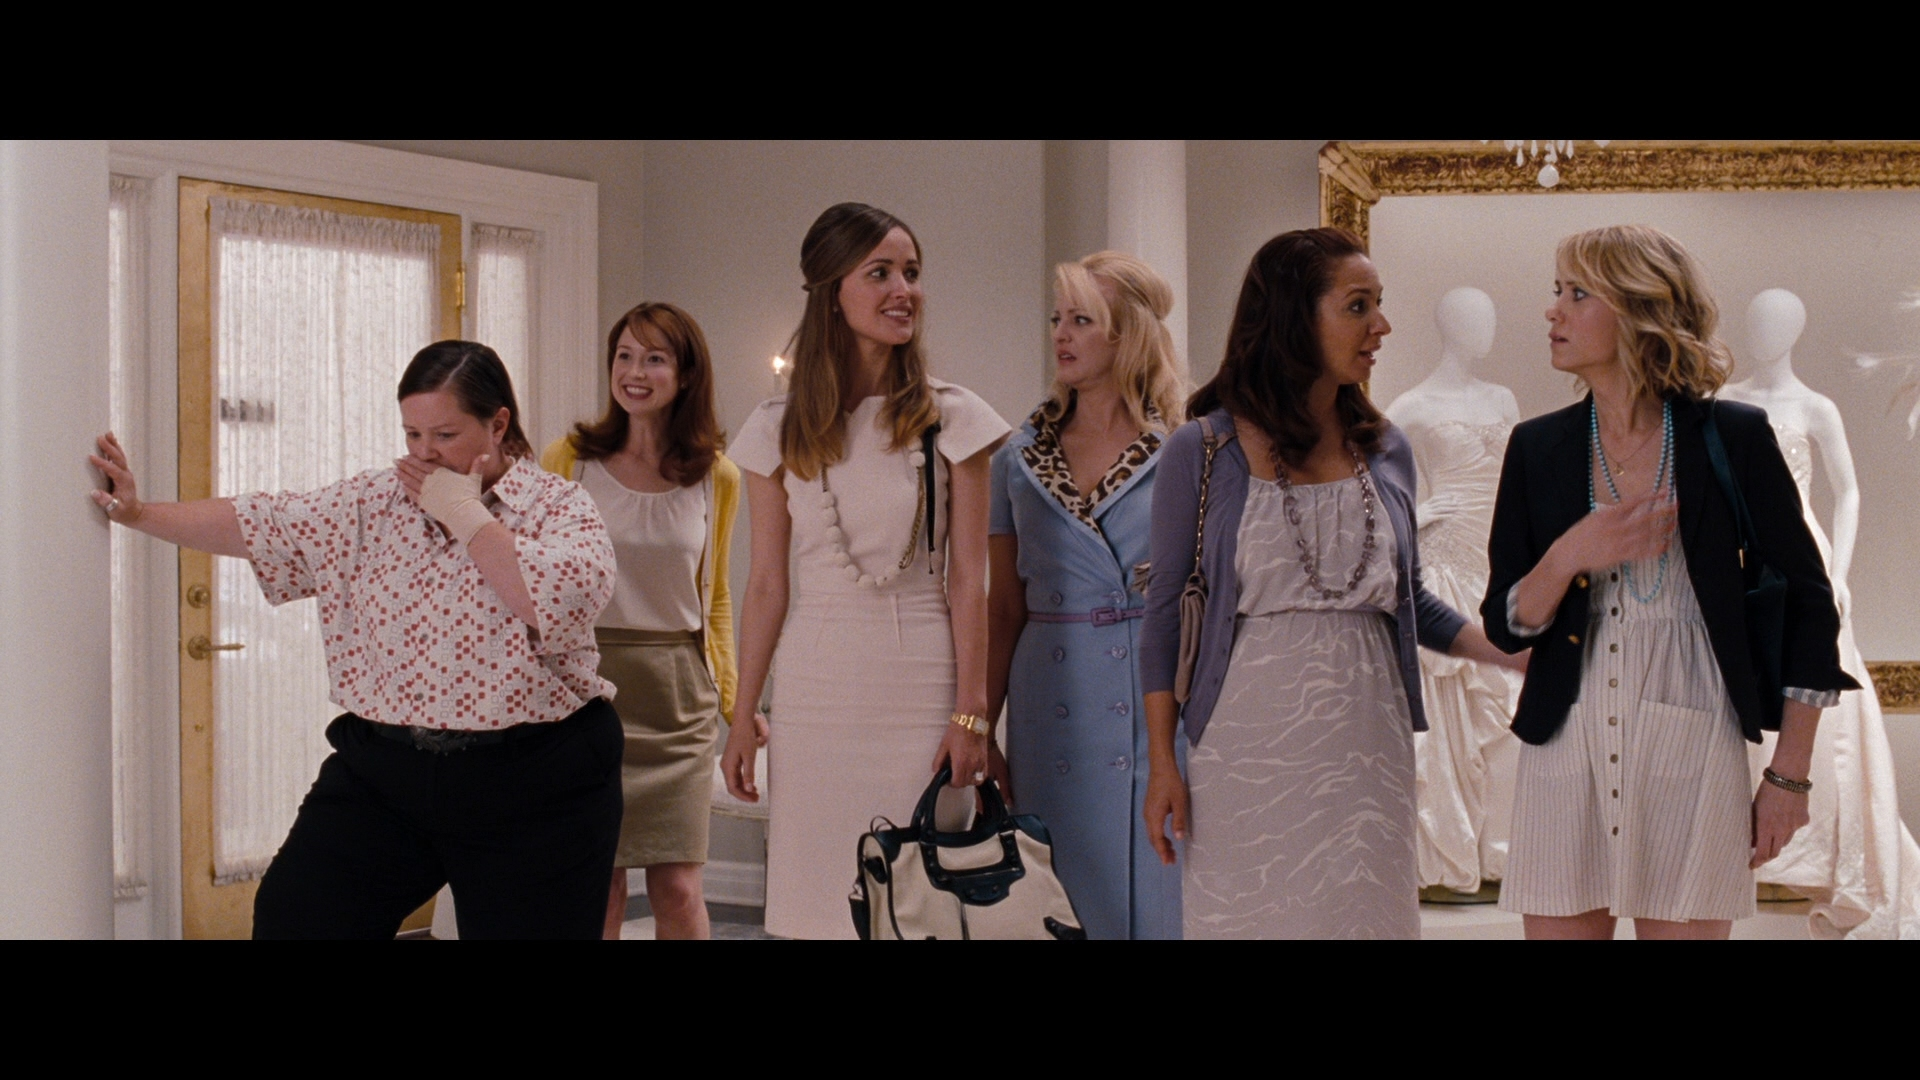 Bridesmaids Movie Lines Submited Images